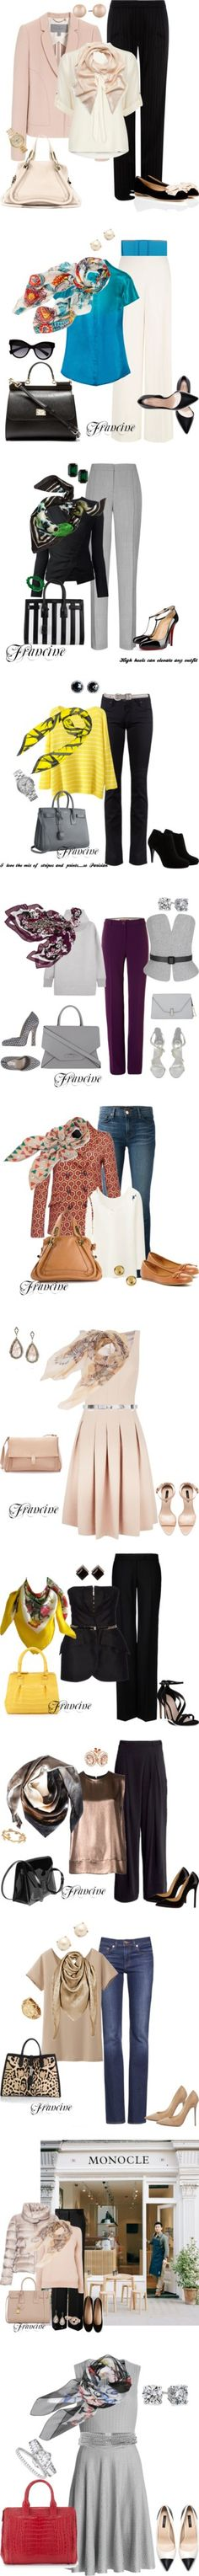 Pretty scarfs by binkie211 on Polyvore featuring мода, Jaeger, Salvatore Ferragamo, Mulberry, Dorothy Perkins, Chloé, Michael Kors, Carolee, Hobbs and Burberry